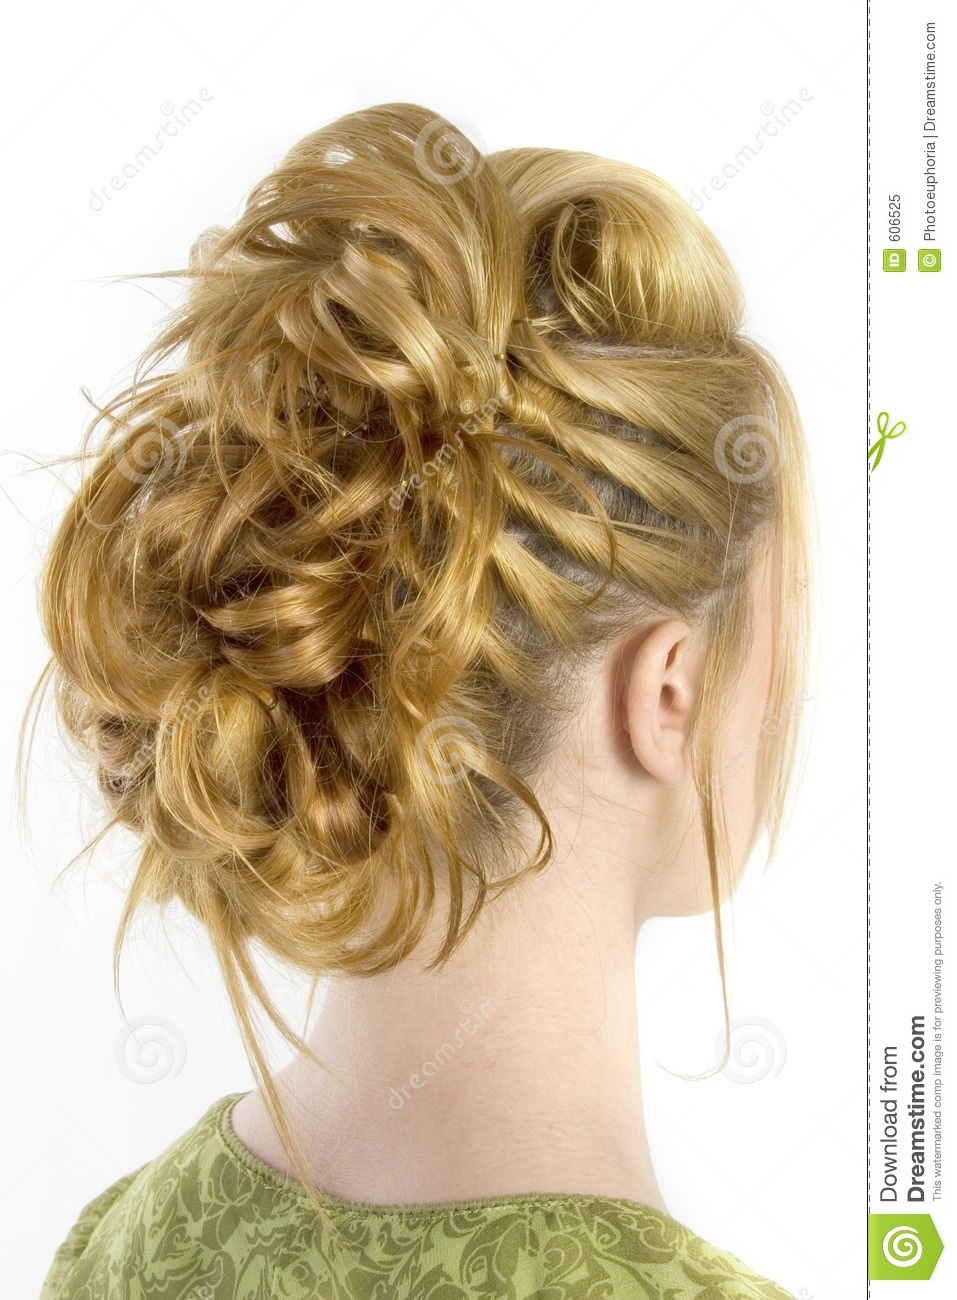 free hair style hair style royalty free stock photo image 606525 3773